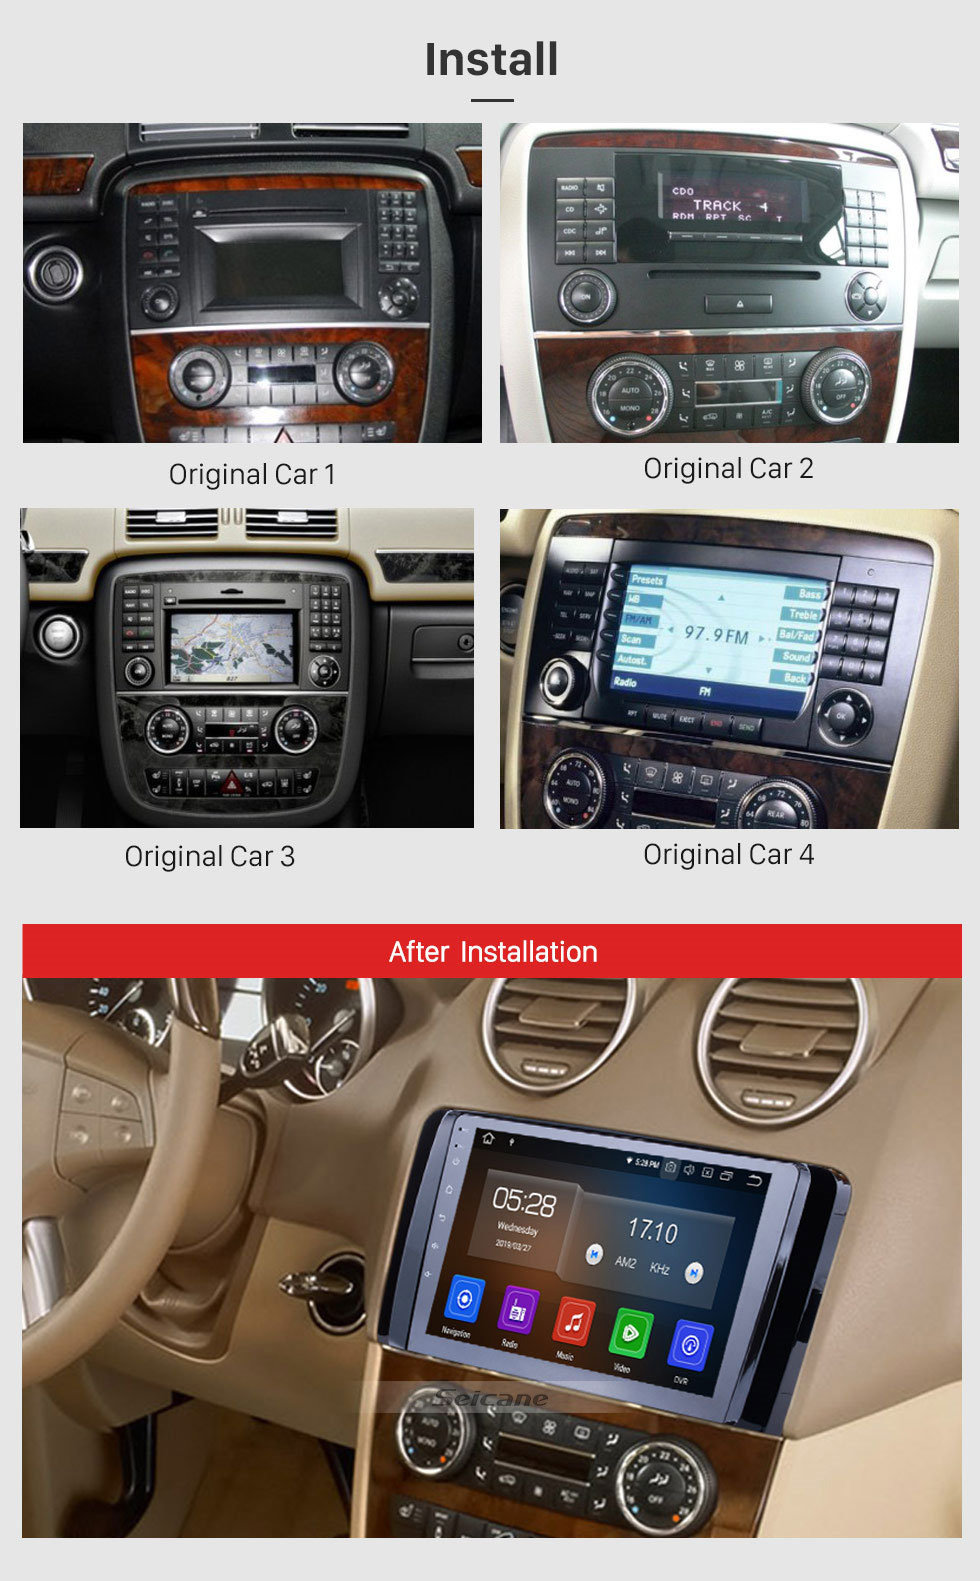 Seicane 9 Inch OEM Android 9.0 Radio Capacitive Touch Screen For 2006-2013 Mercedes Benz R Class W251 R280 R300 R320 R350 R63 Support 3G WiFi Bluetooth GPS Navigation system TPMS DVR OBD II AUX Headrest Monitor Control Video Rear camera USB SD